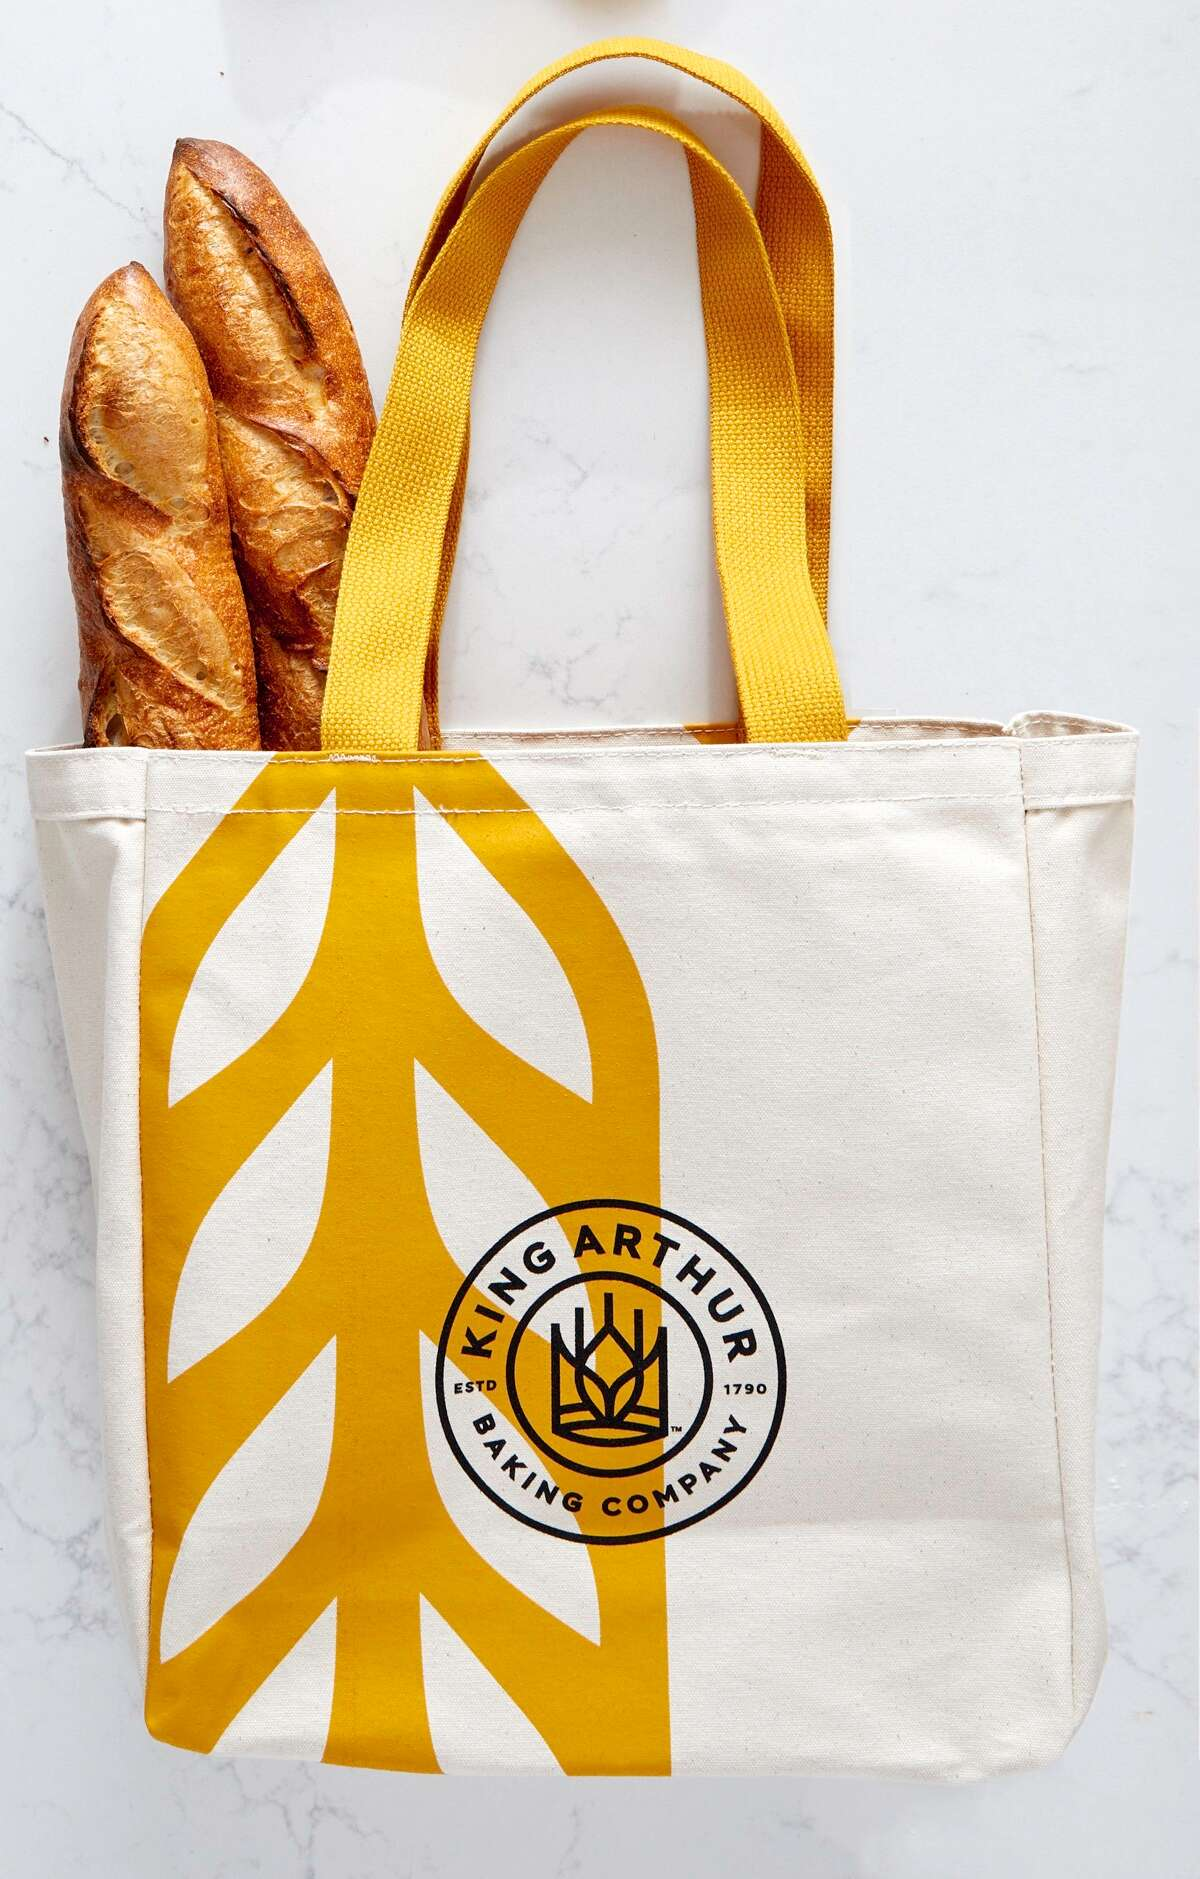 King Arthur Baking Company tote bag with two baguettes.